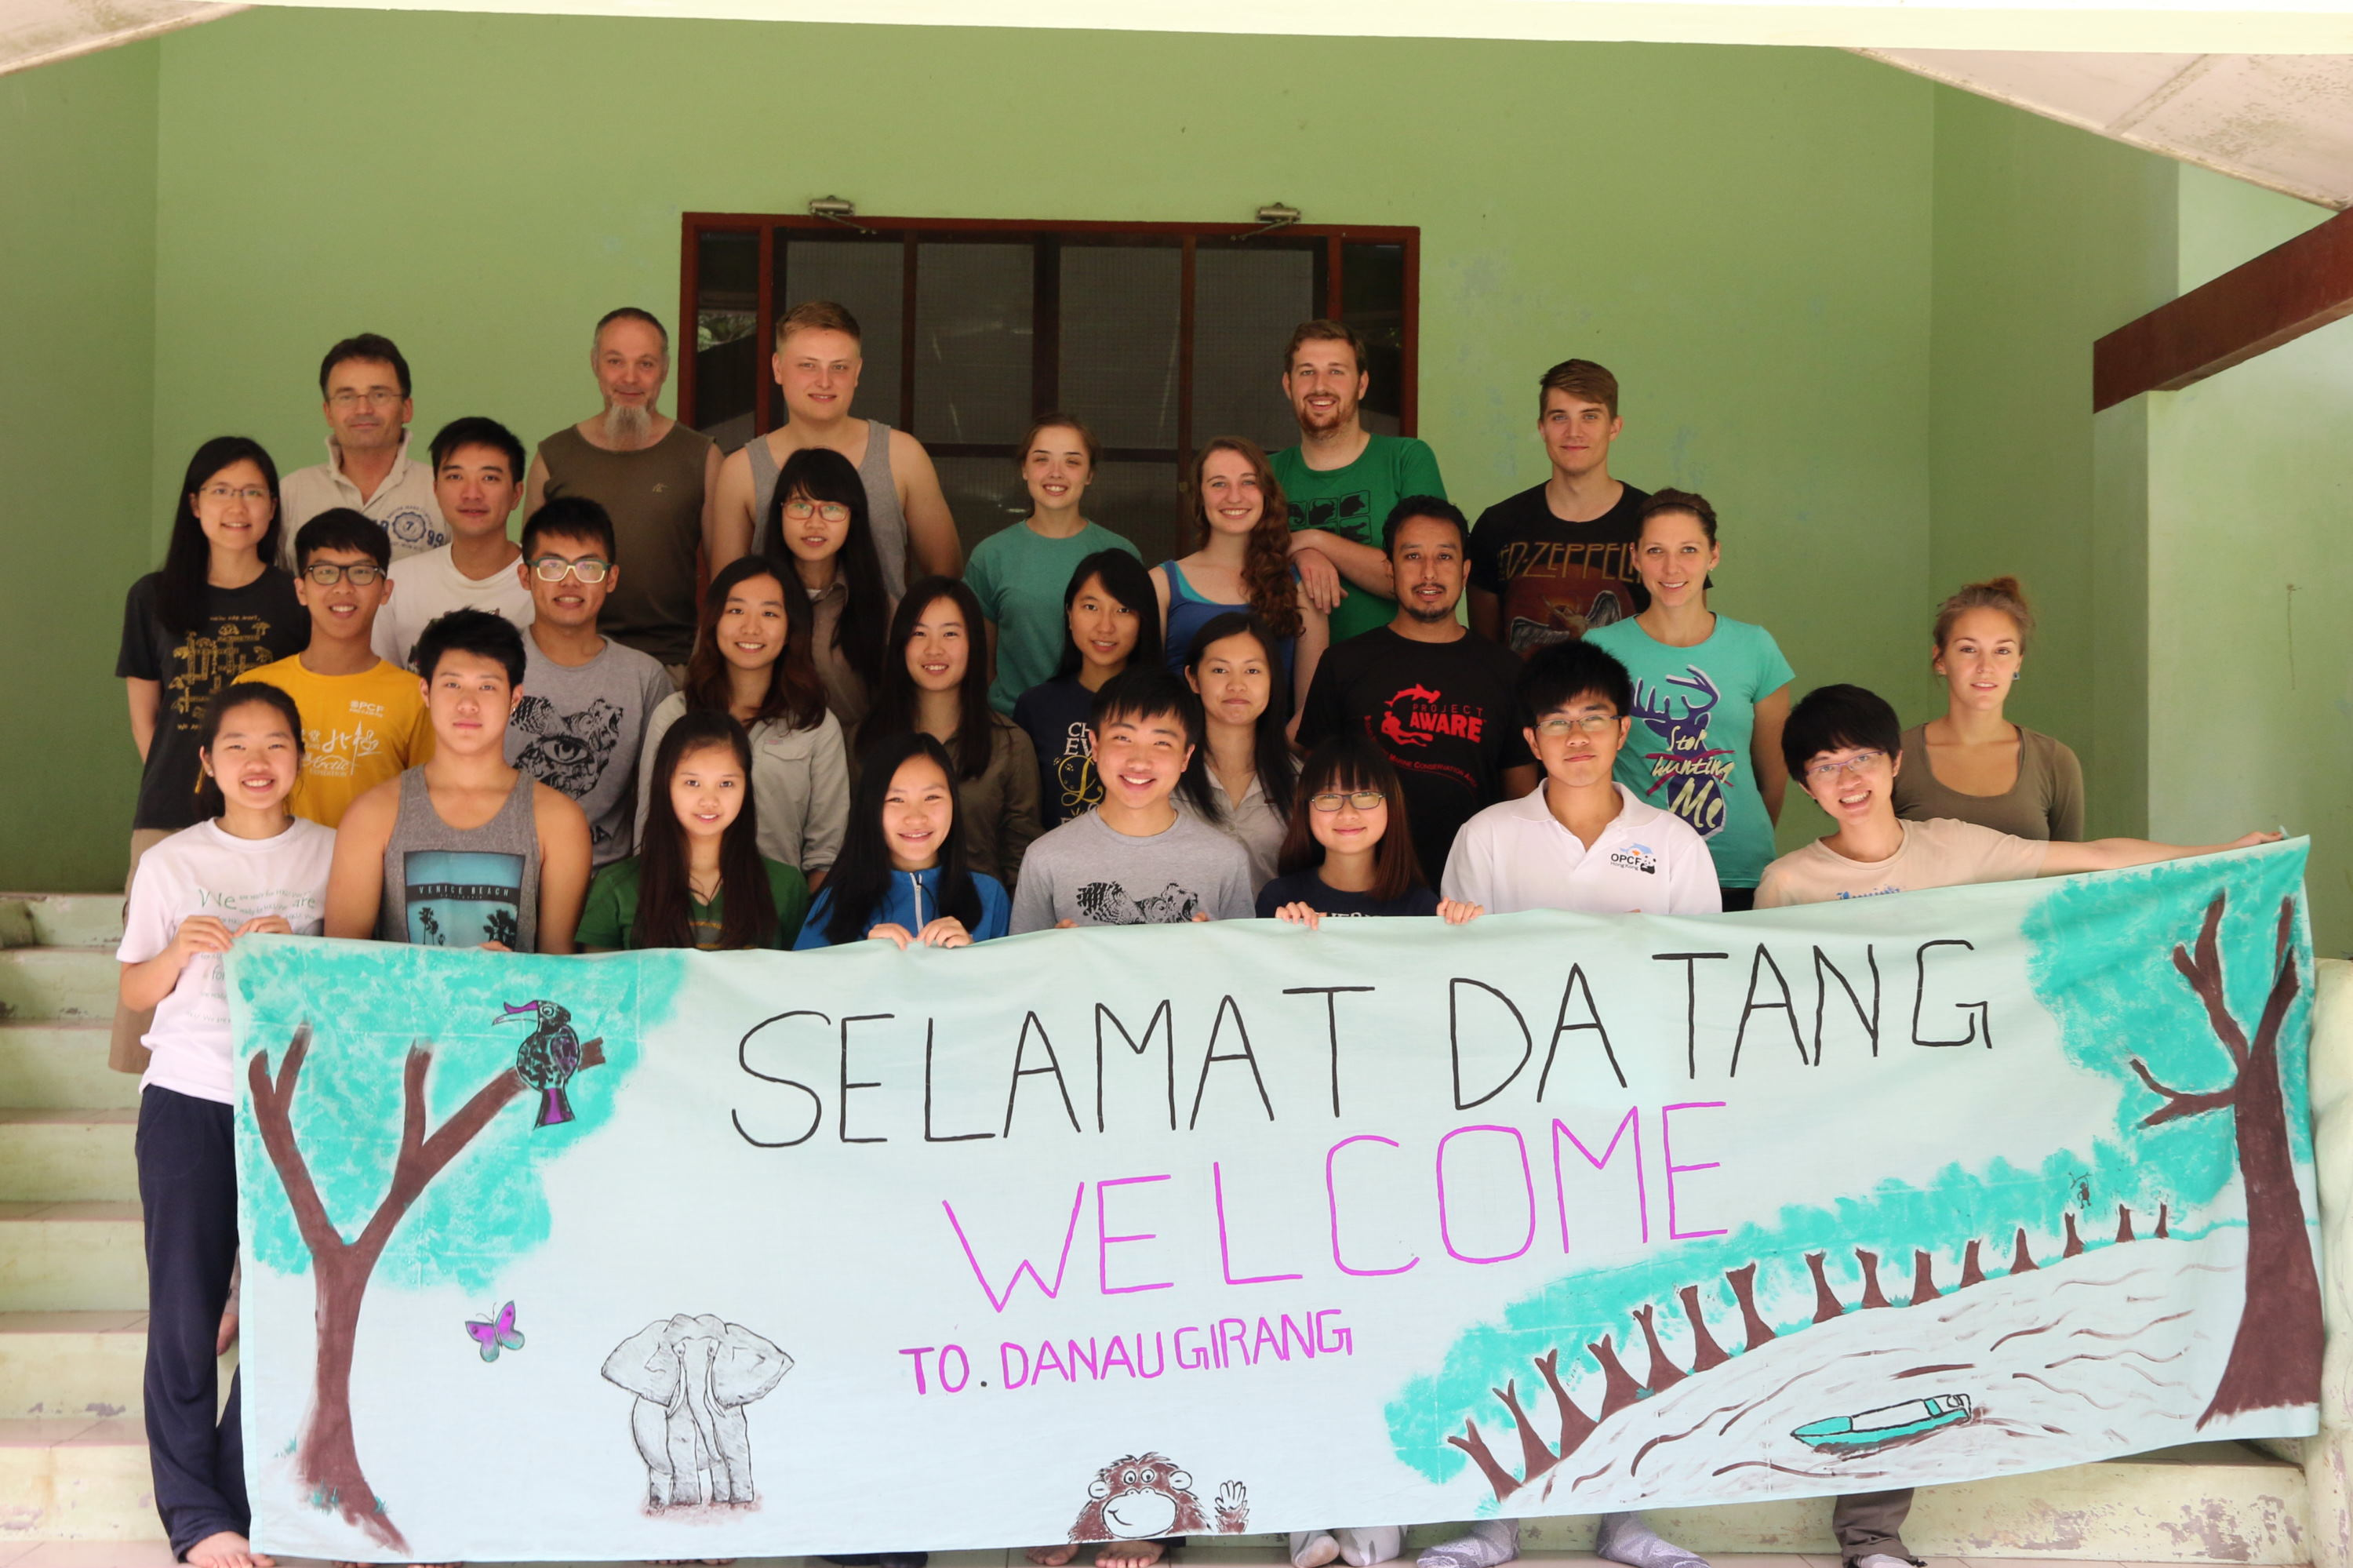 Animal Behaviour Field Course 2015 at Danau Girang Field Centre, Sabah